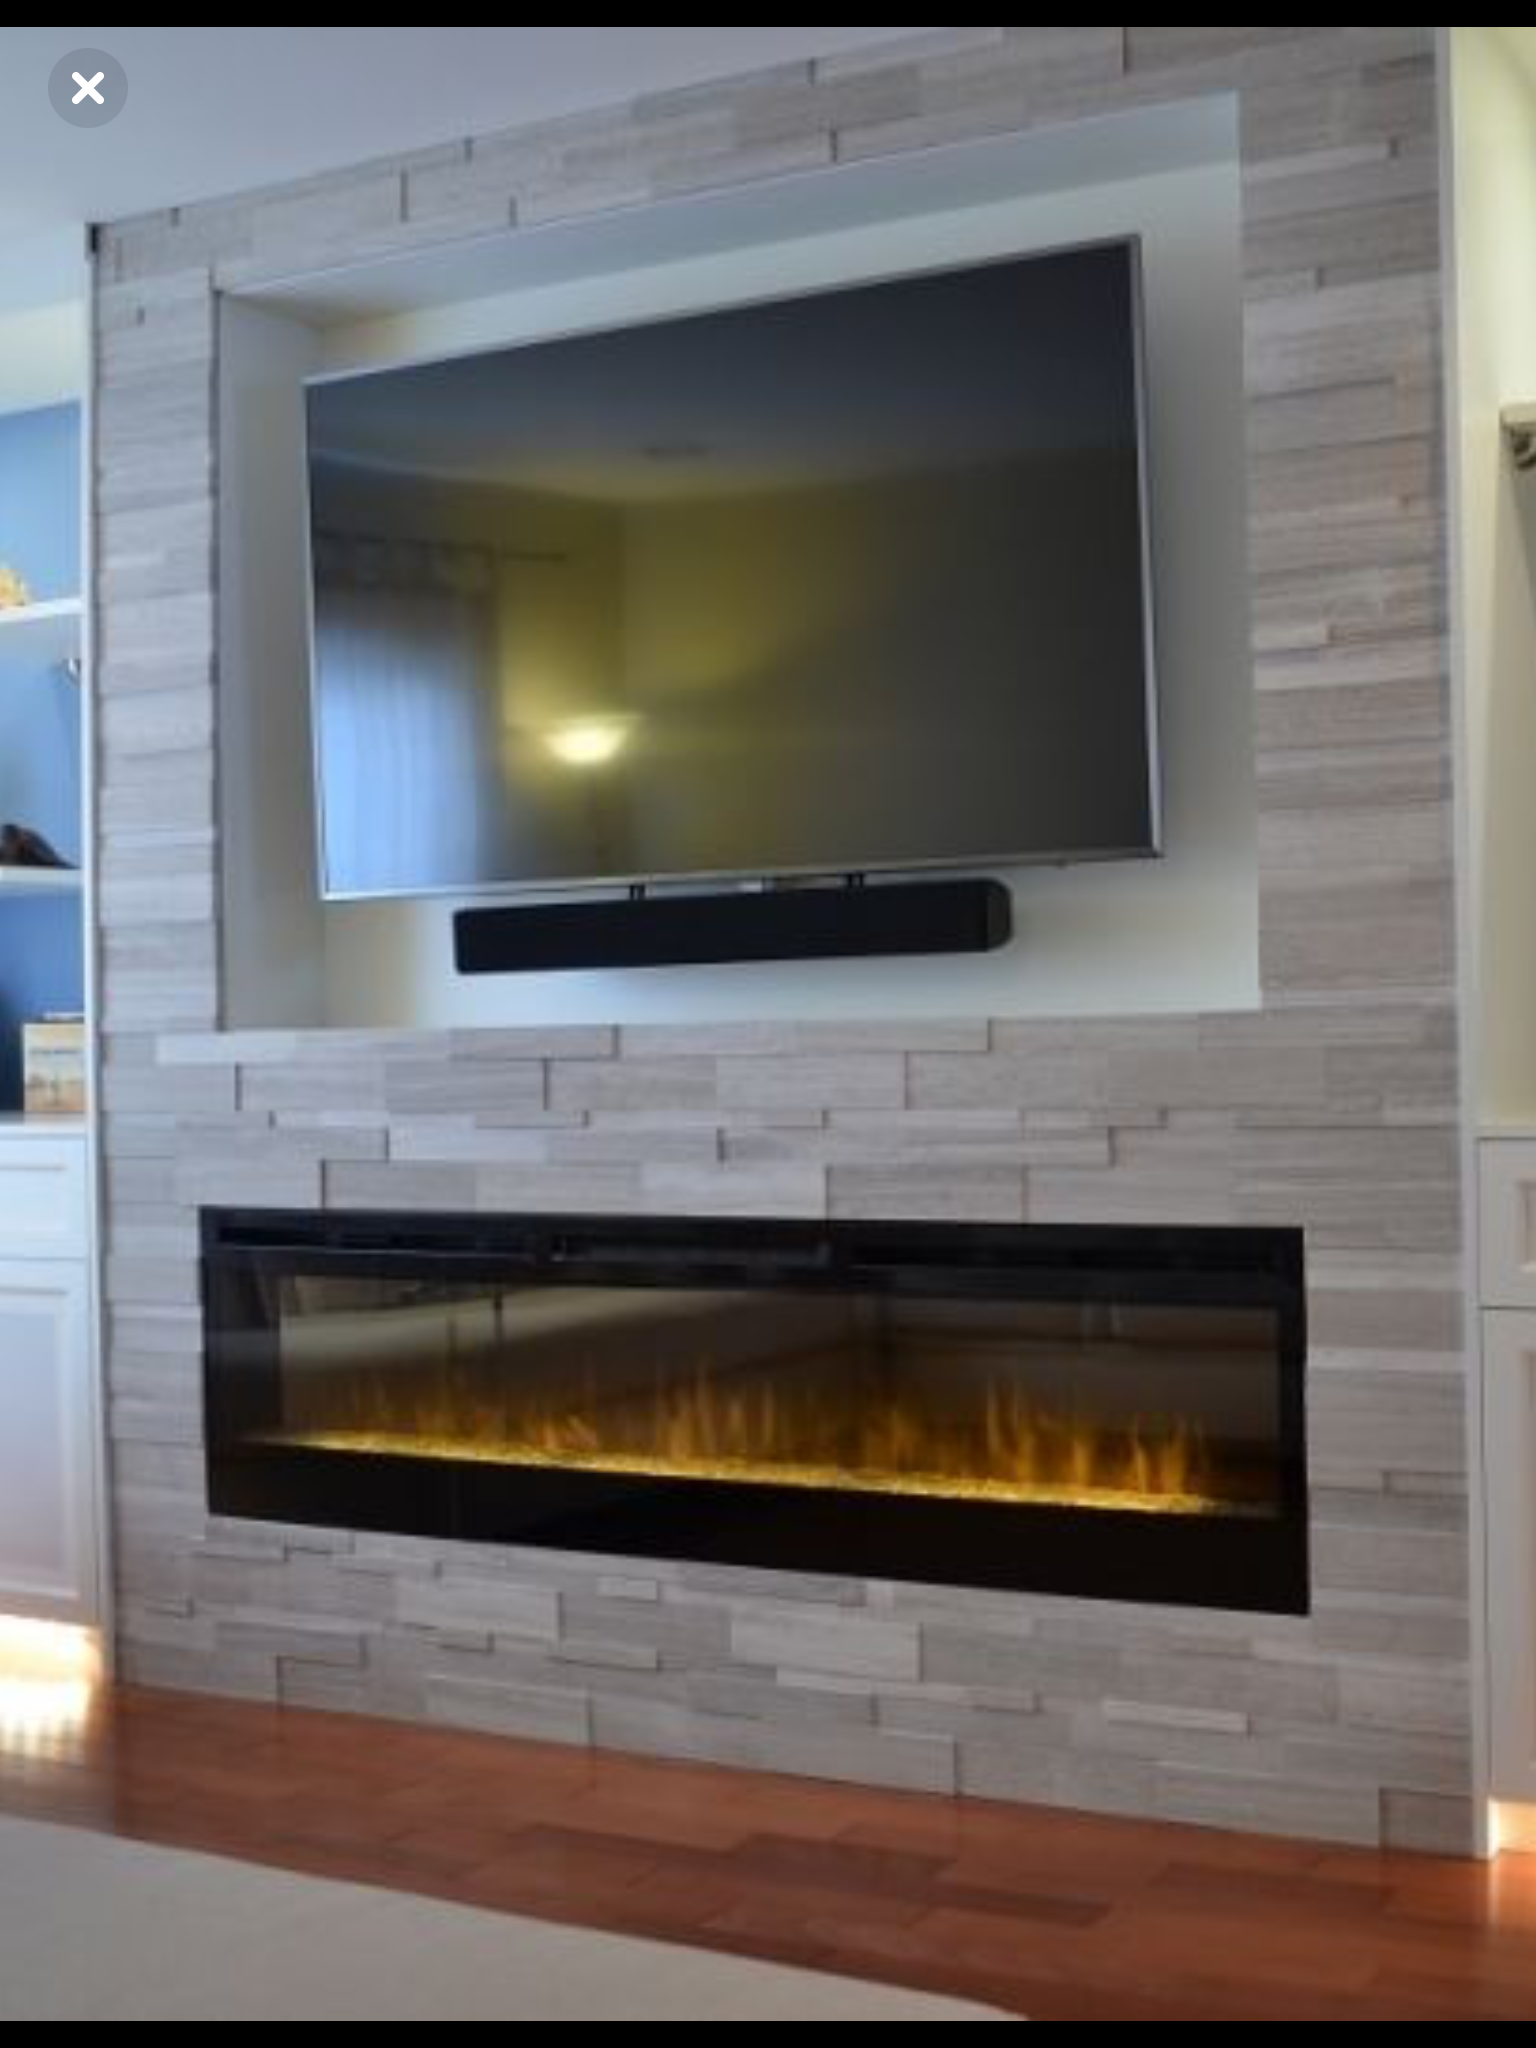 Get This Fireplace Look Using The Ames Cubics Series Www Amestile